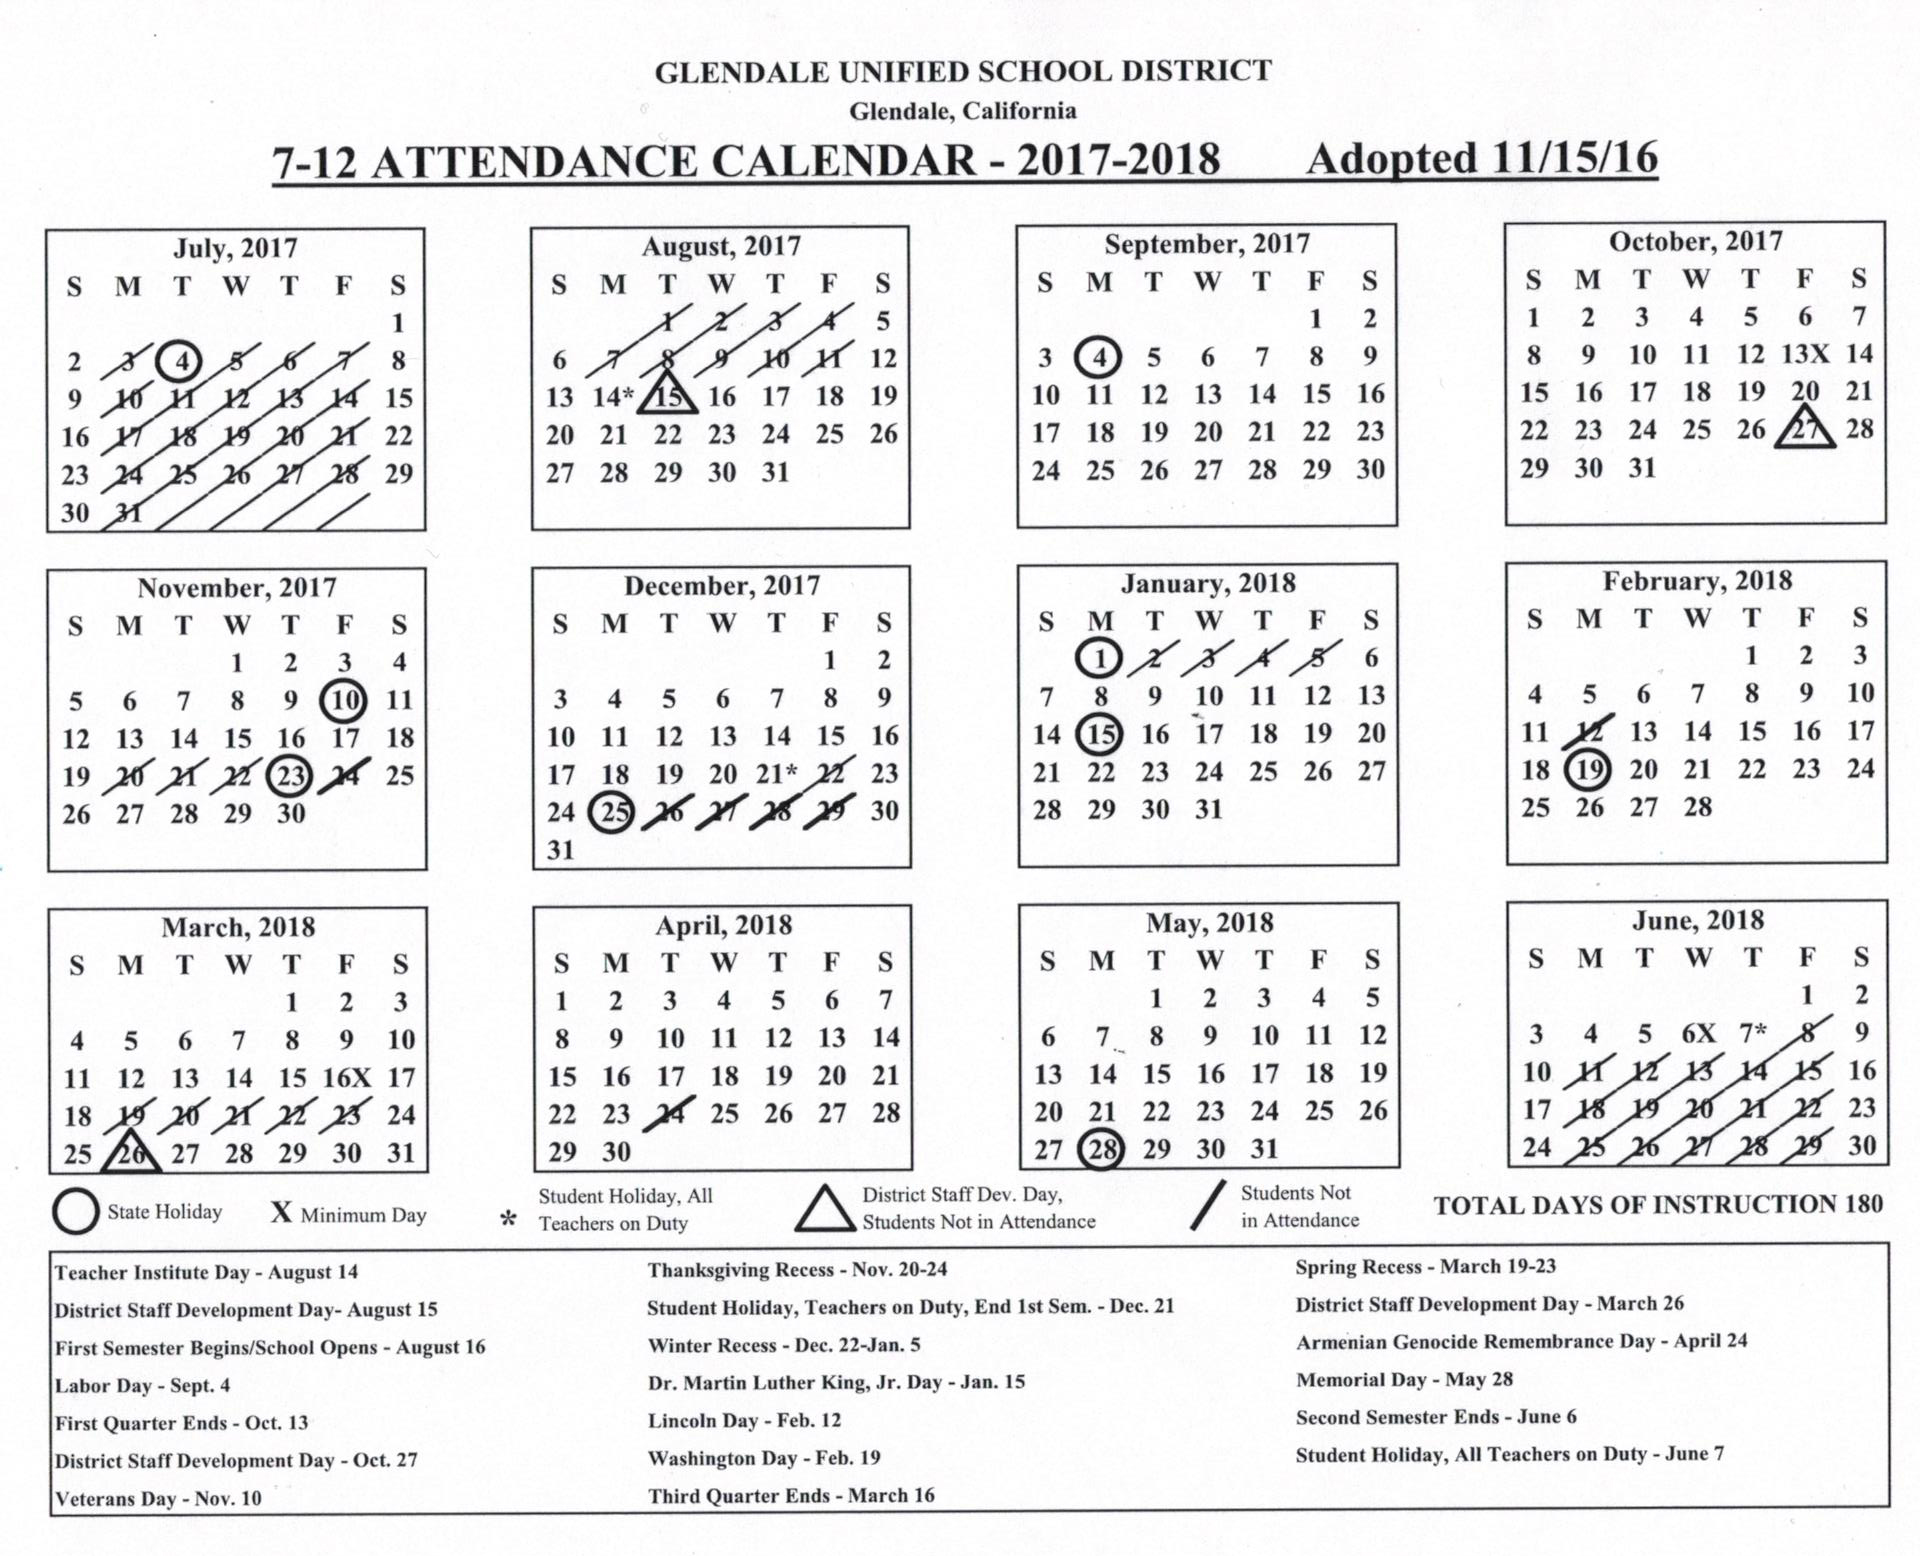 Calendar revision finalized